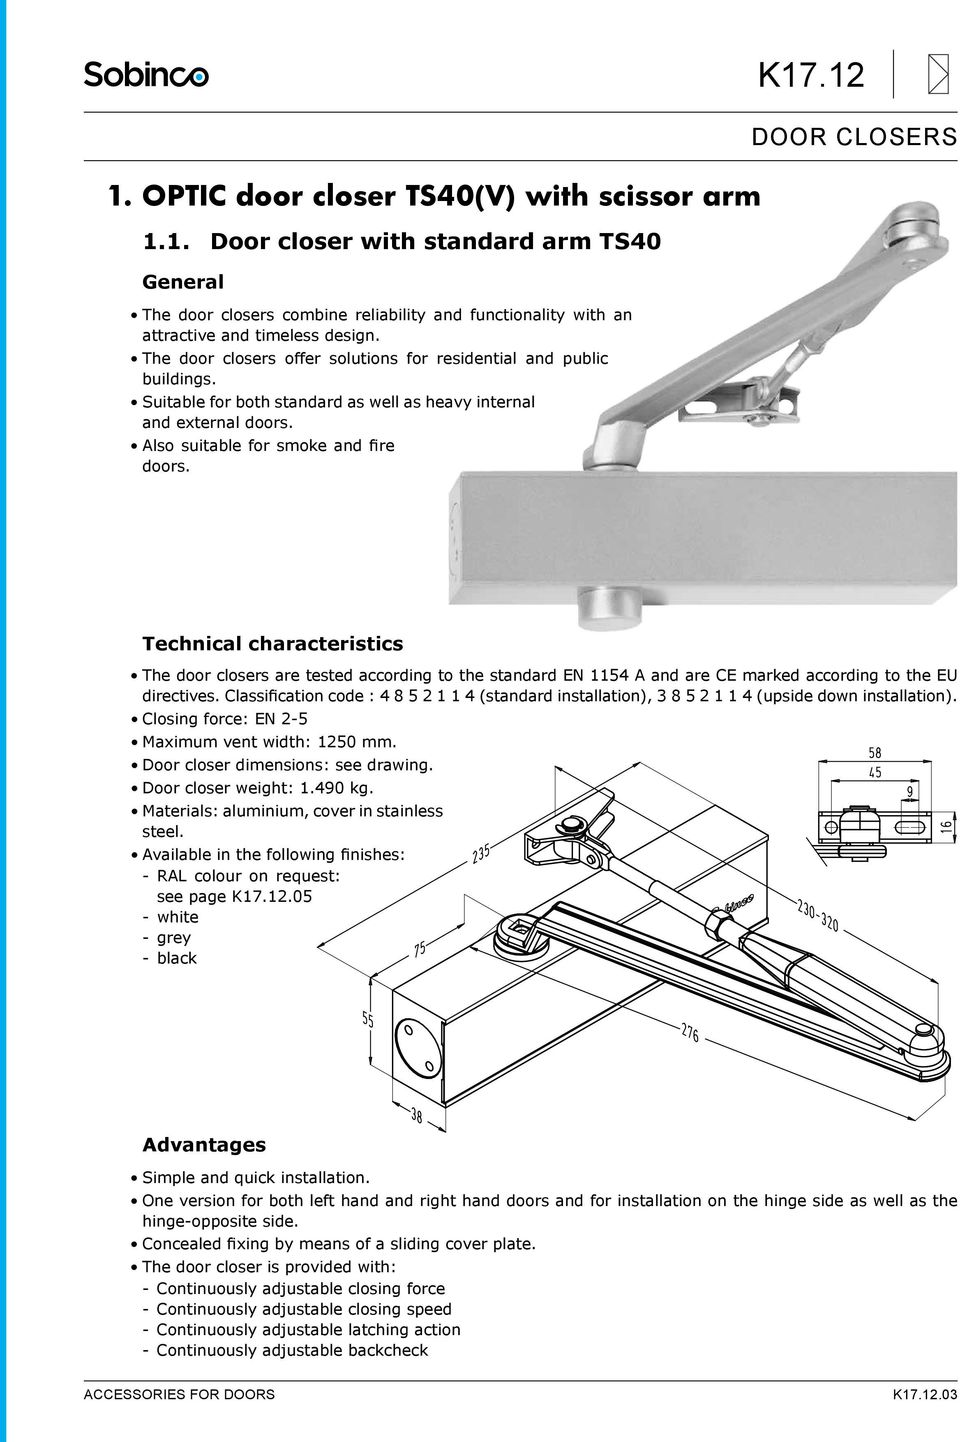 12 Technical characteristics The door closers are tested according to the standard EN 1154 A and are CE marked according to the EU directives.